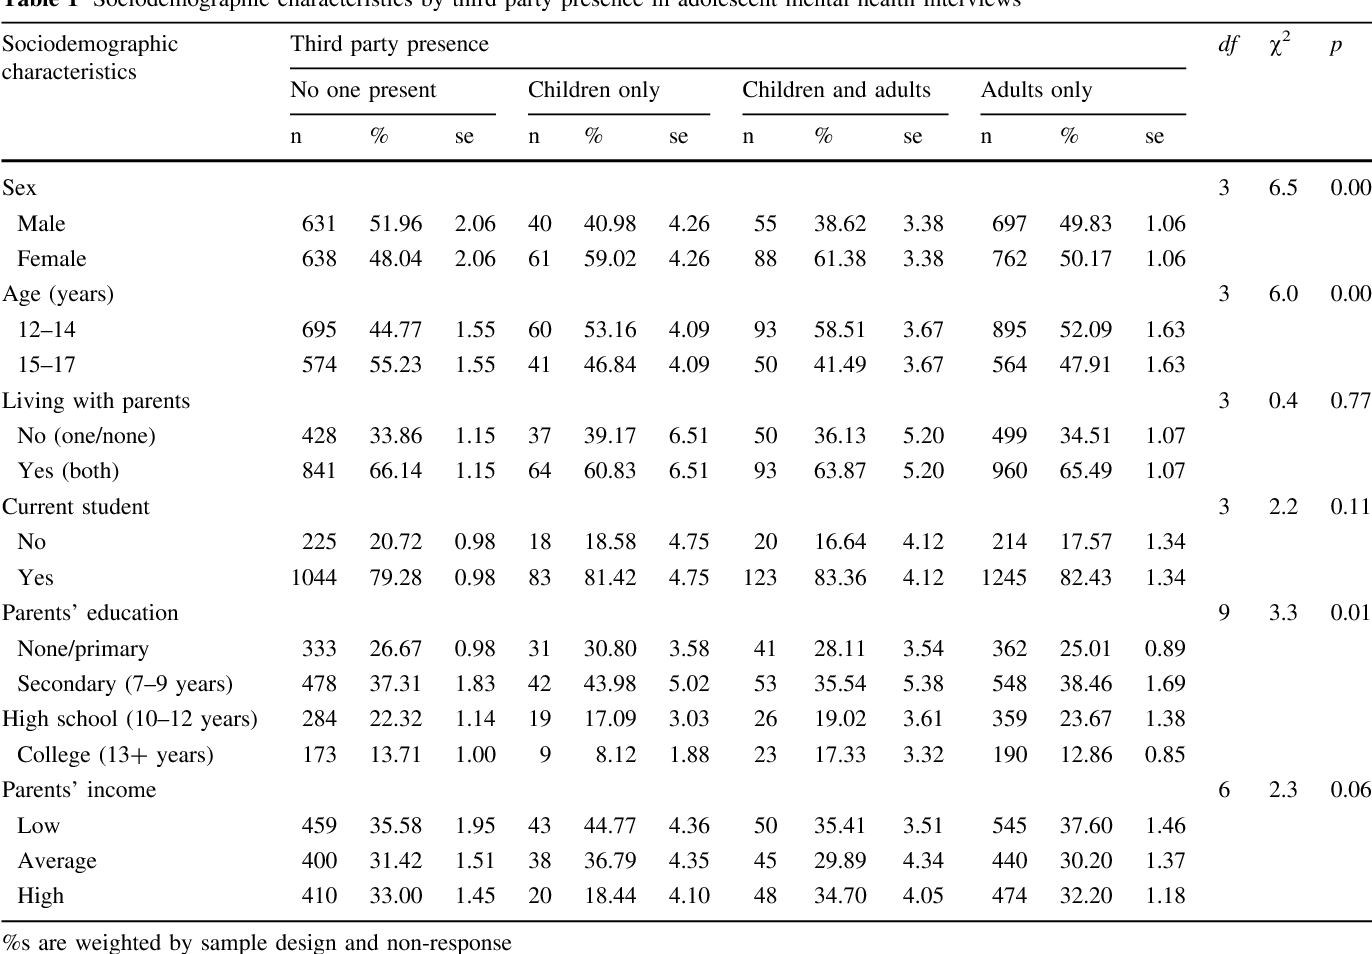 Table 1 Sociodemographic characteristics by third party presence in adolescent mental health interviews